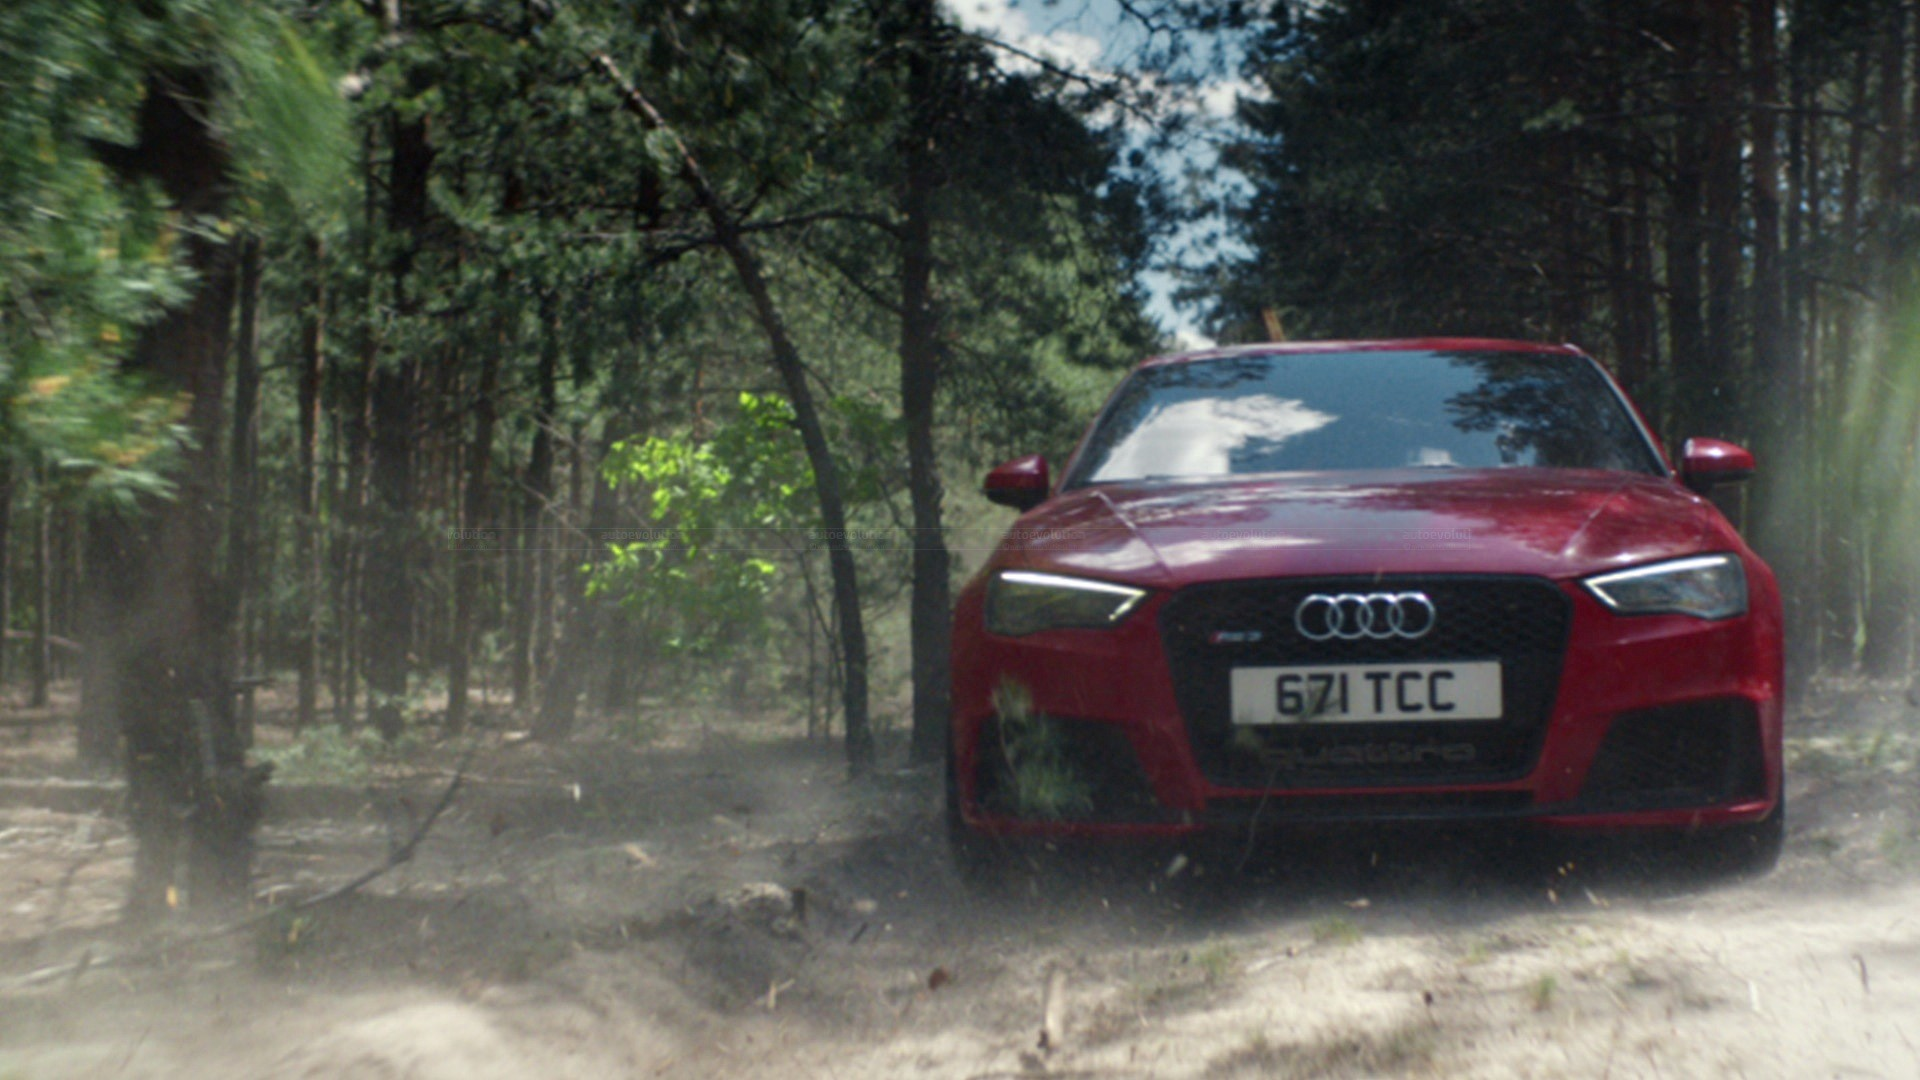 New Audi Rs3 Vs Old Quattro Rally Car The Duel In The